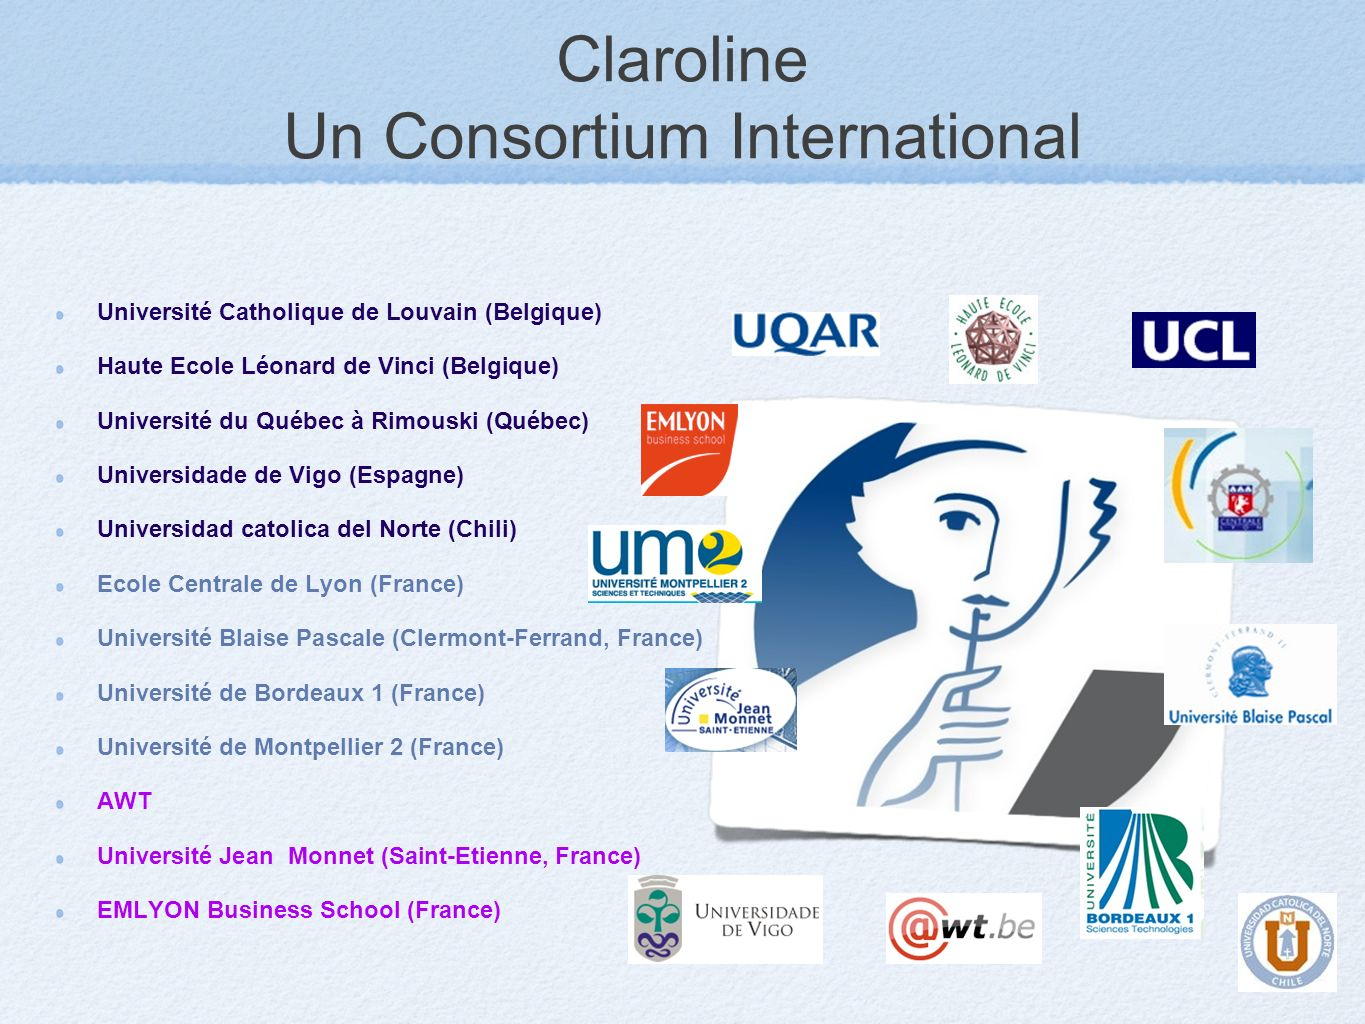 Claroline Un Consortium International